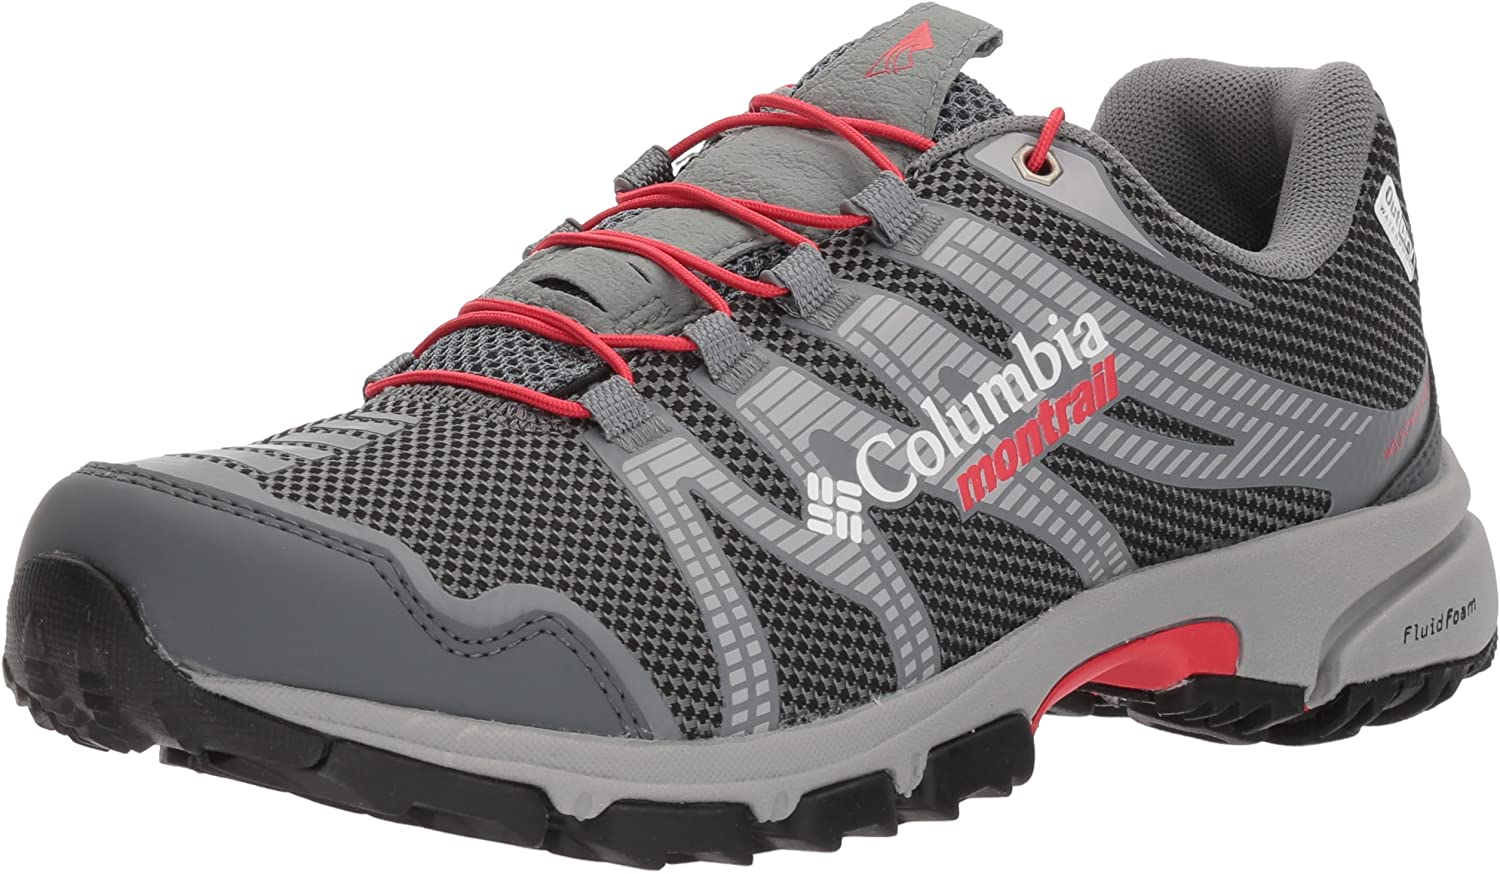 Columbia Women s Mountain Masochist IV Outdry Trail Running Shoe, Graphite, red Camellia, 10 B US